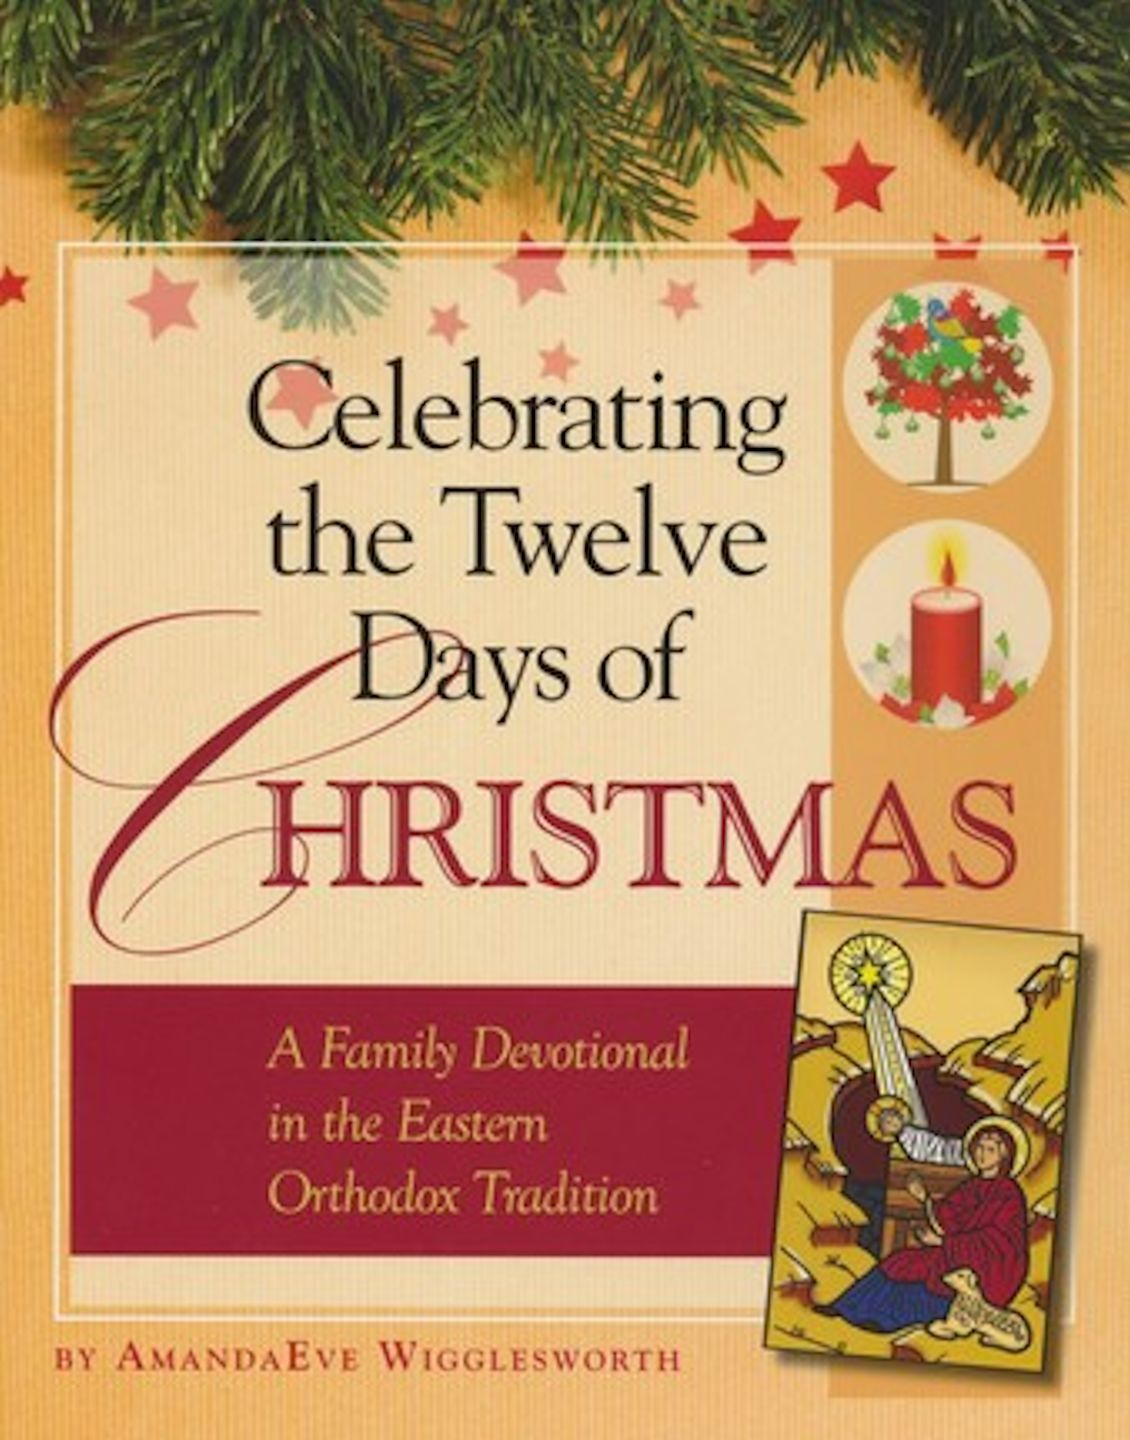 Eastern Orthodox Christmas.Celebrating The Twelve Days Of Christmas A Family Devotional In The Eastern Orthodox Tradition